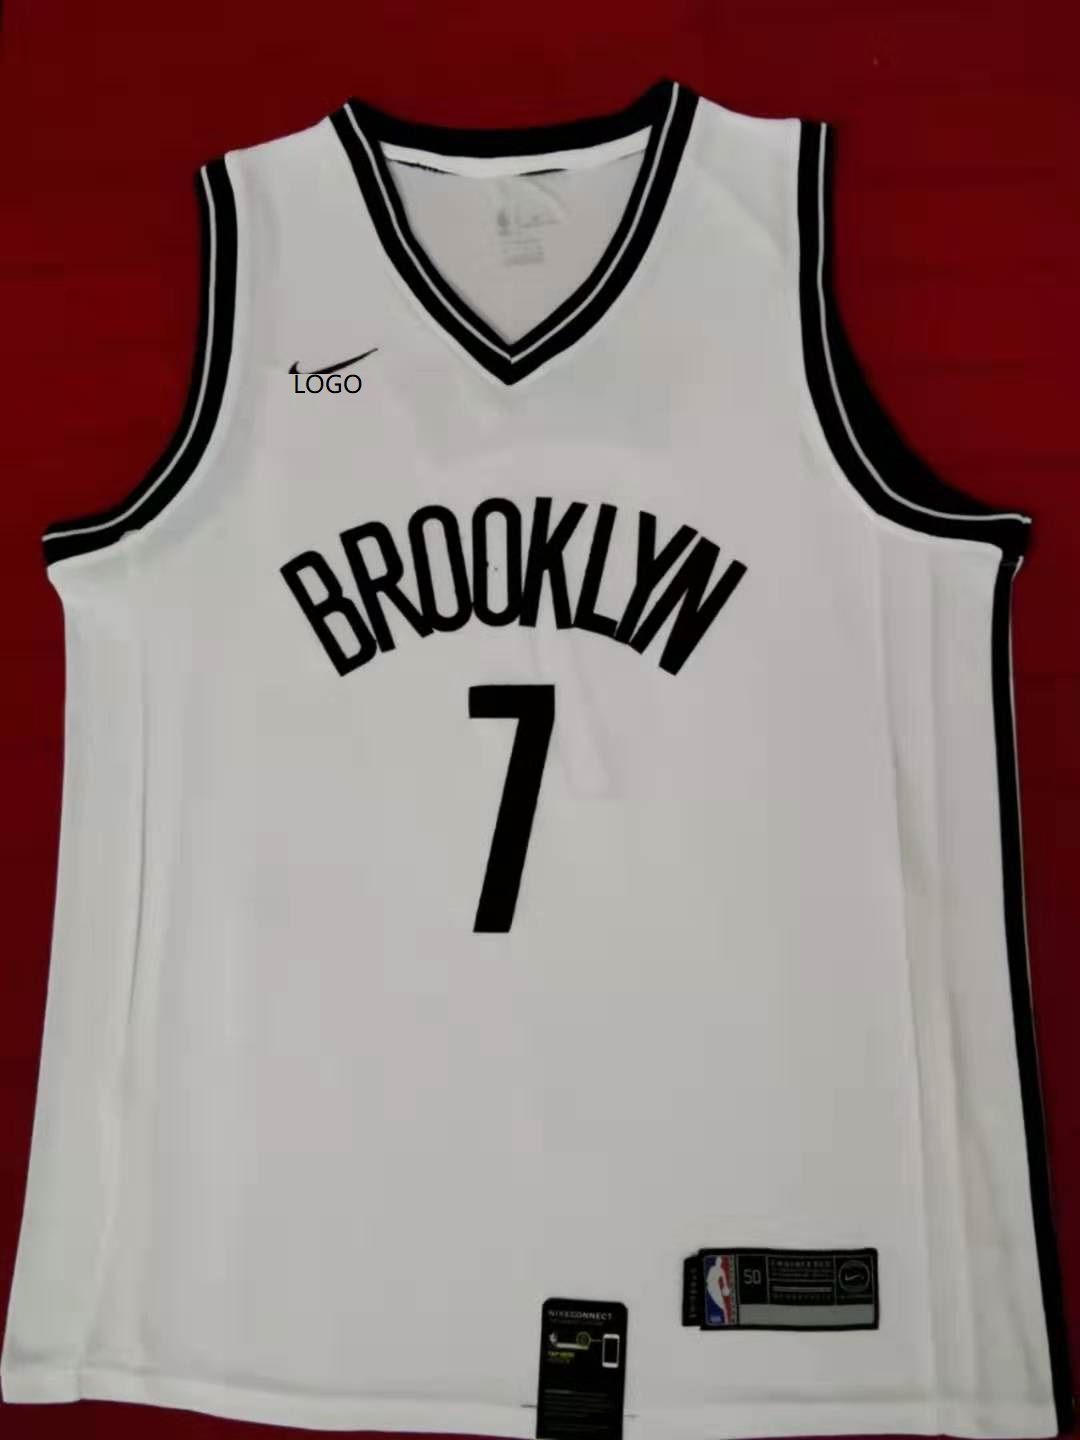 buy popular 2d05f a4435 2019/20 Adult Brooklyn Nets 7 durant white basketball jersey